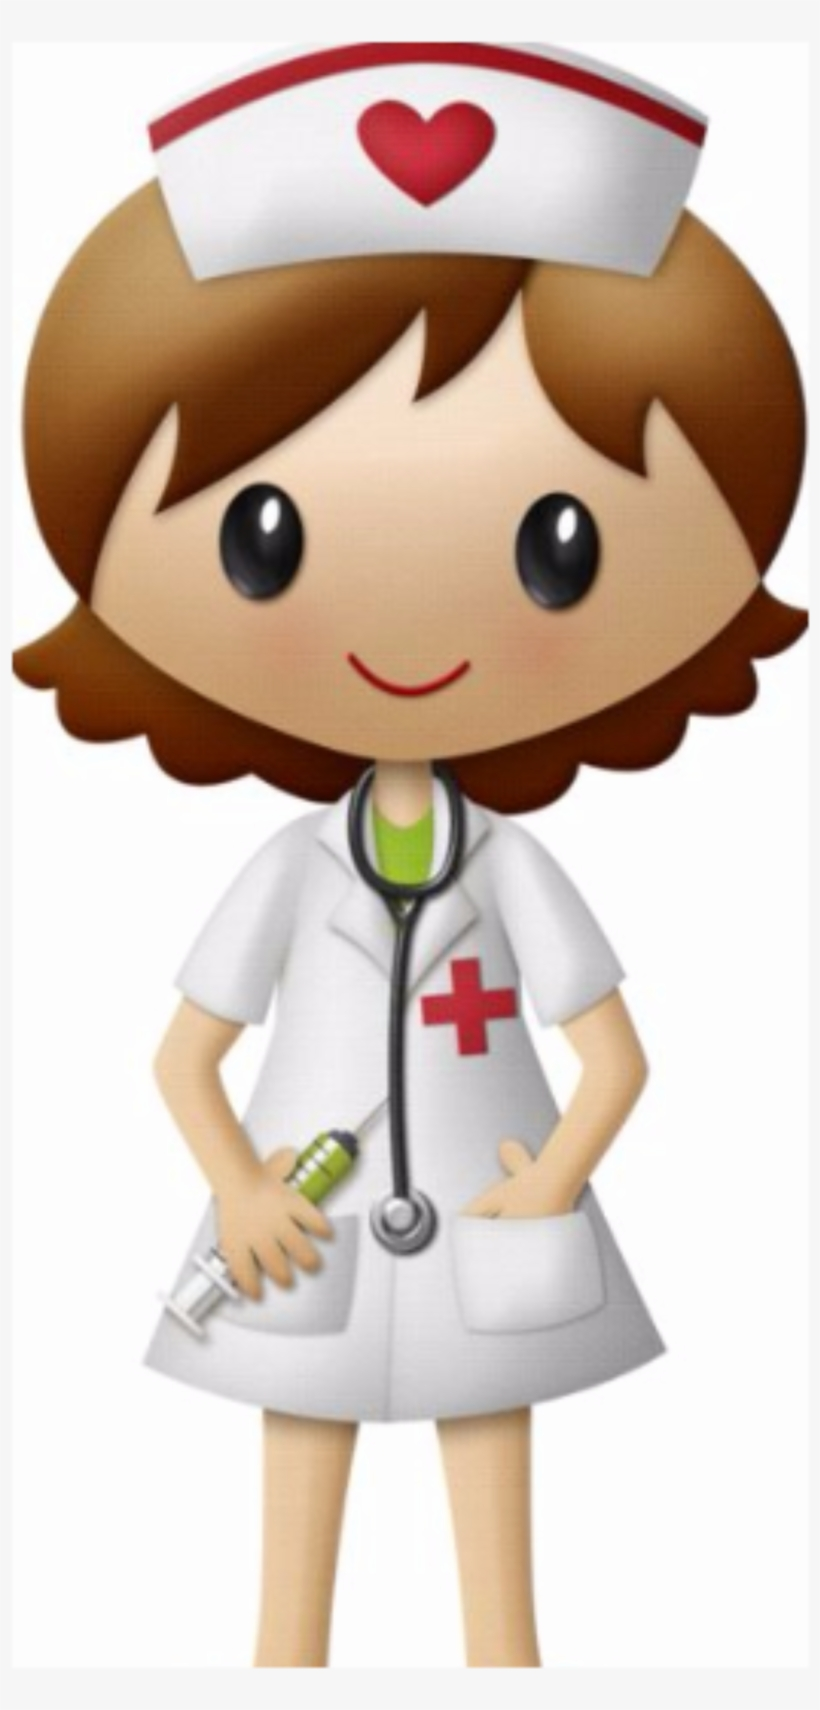 Angel nurse clipart vector transparent stock Nurse PNG Images | PNG Cliparts Free Download on SeekPNG vector transparent stock